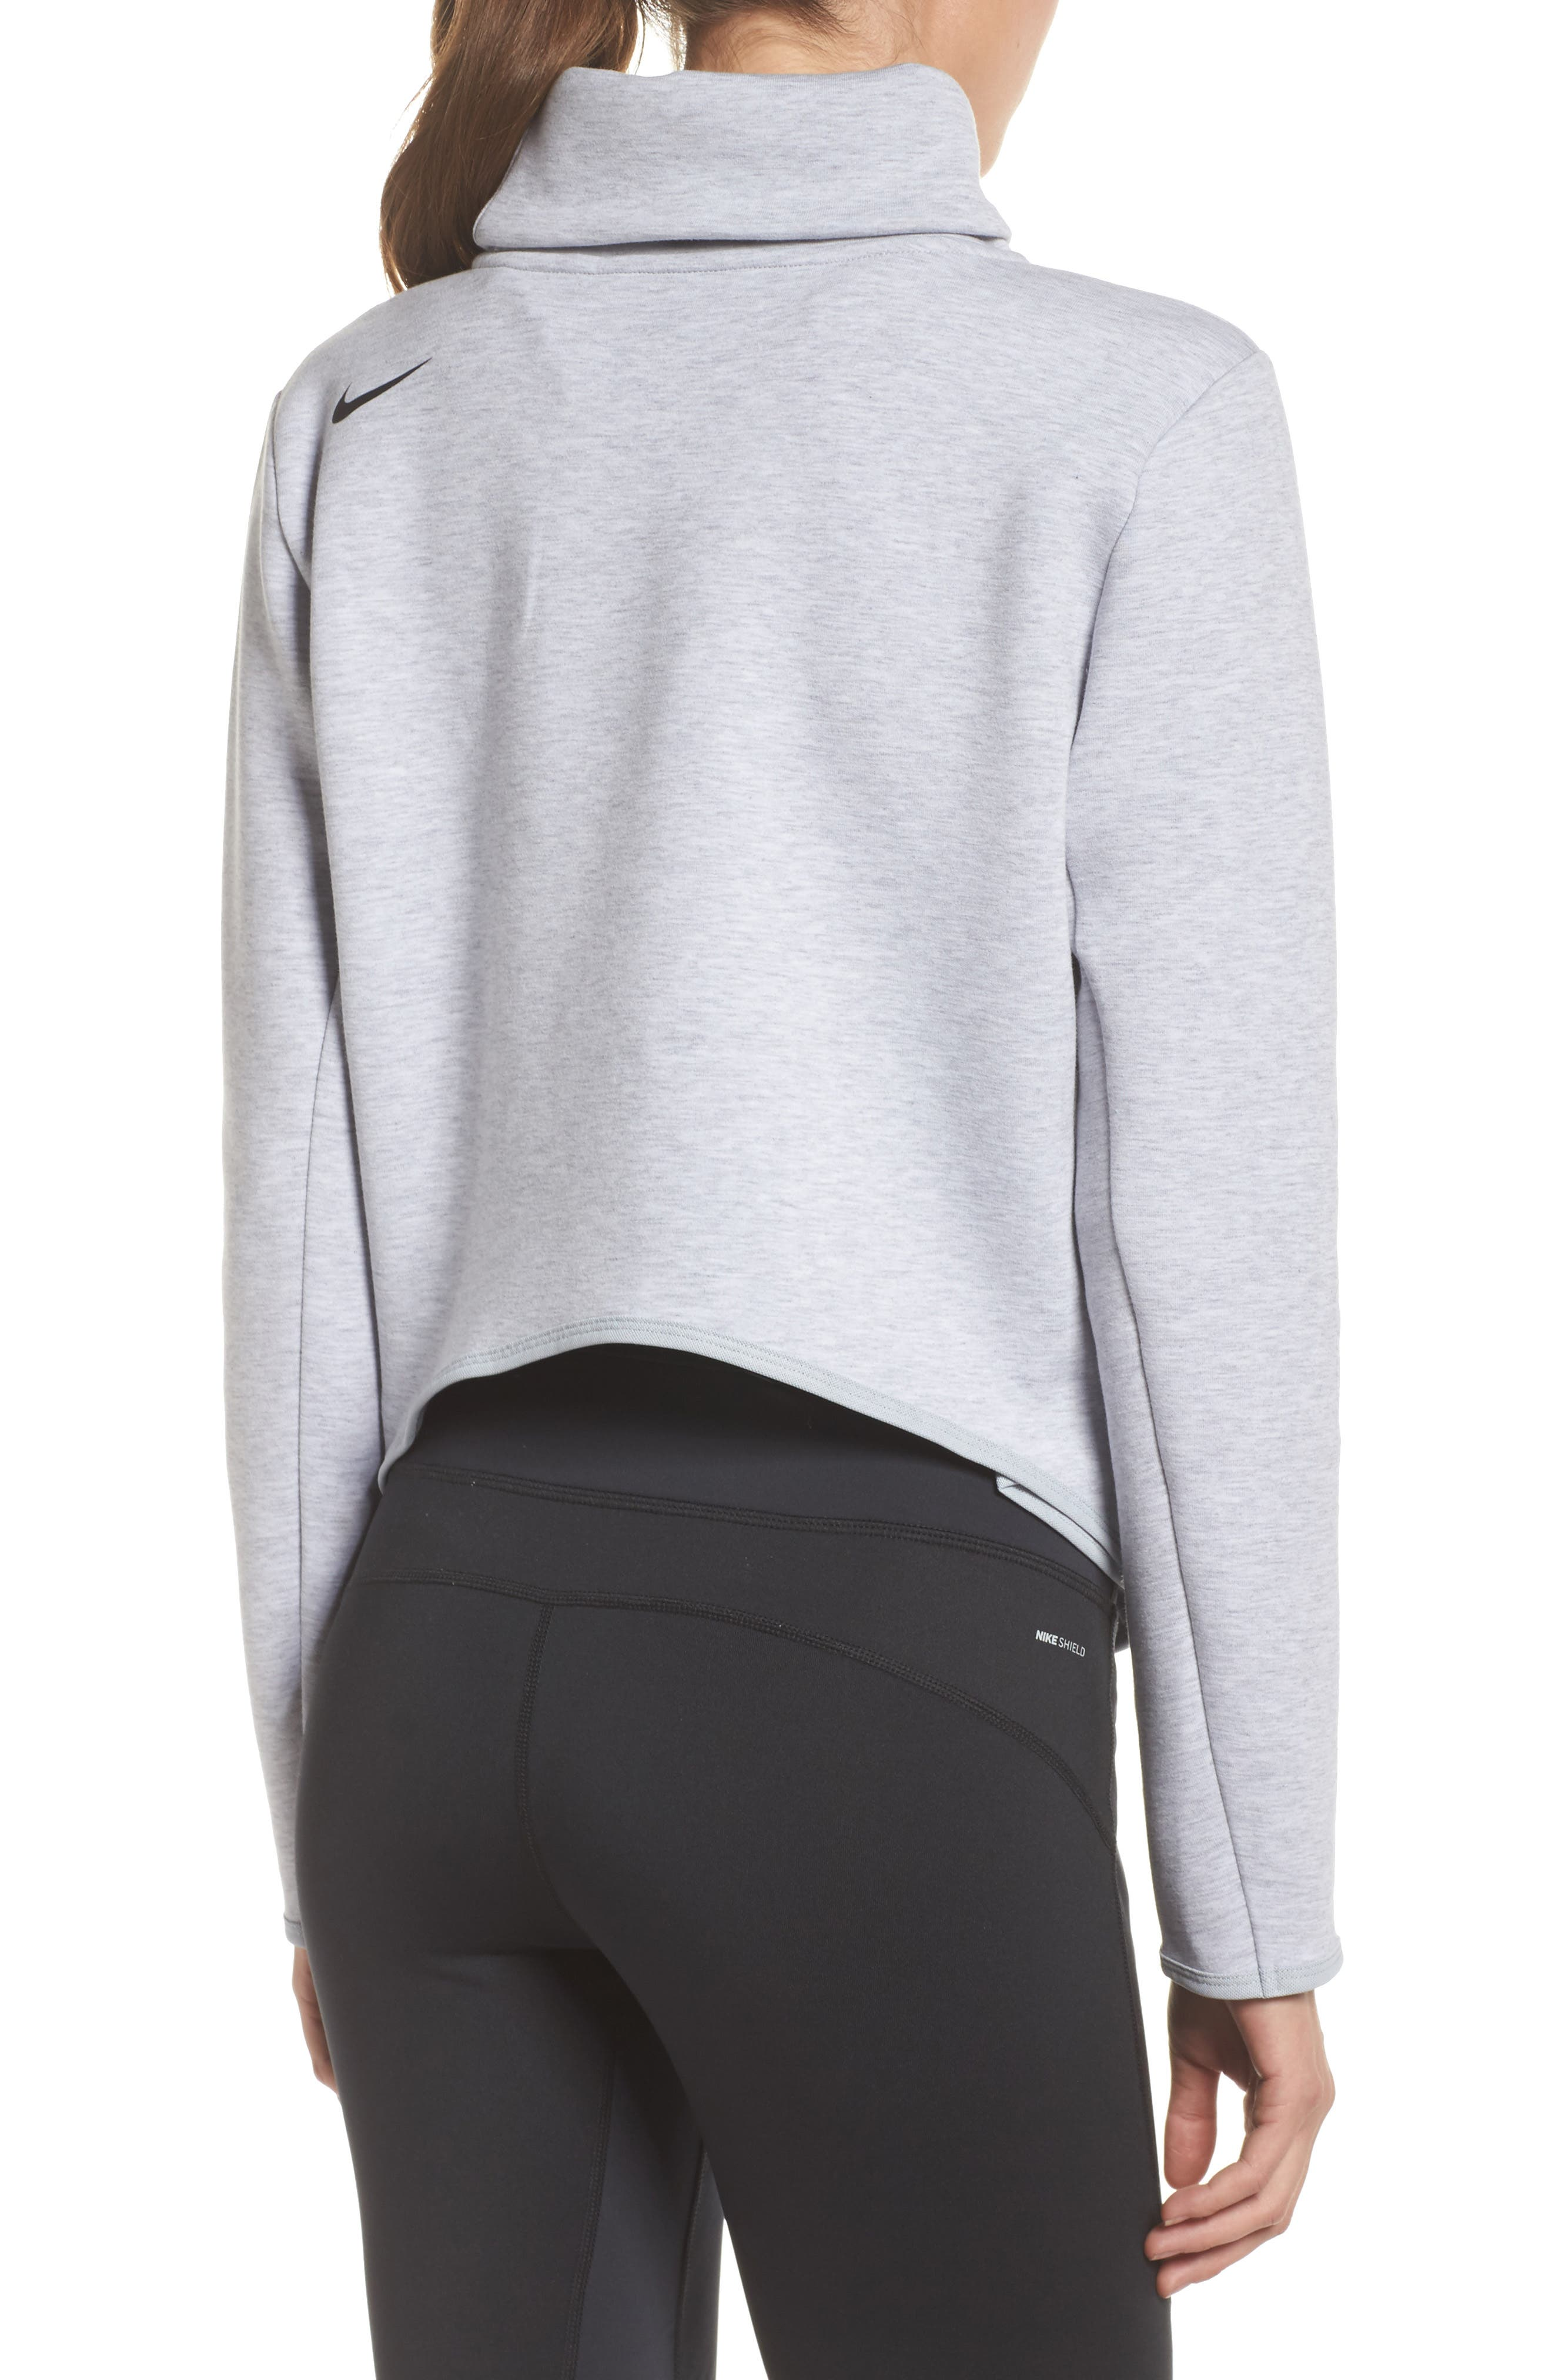 Therma Training Top,                             Alternate thumbnail 2, color,                             020